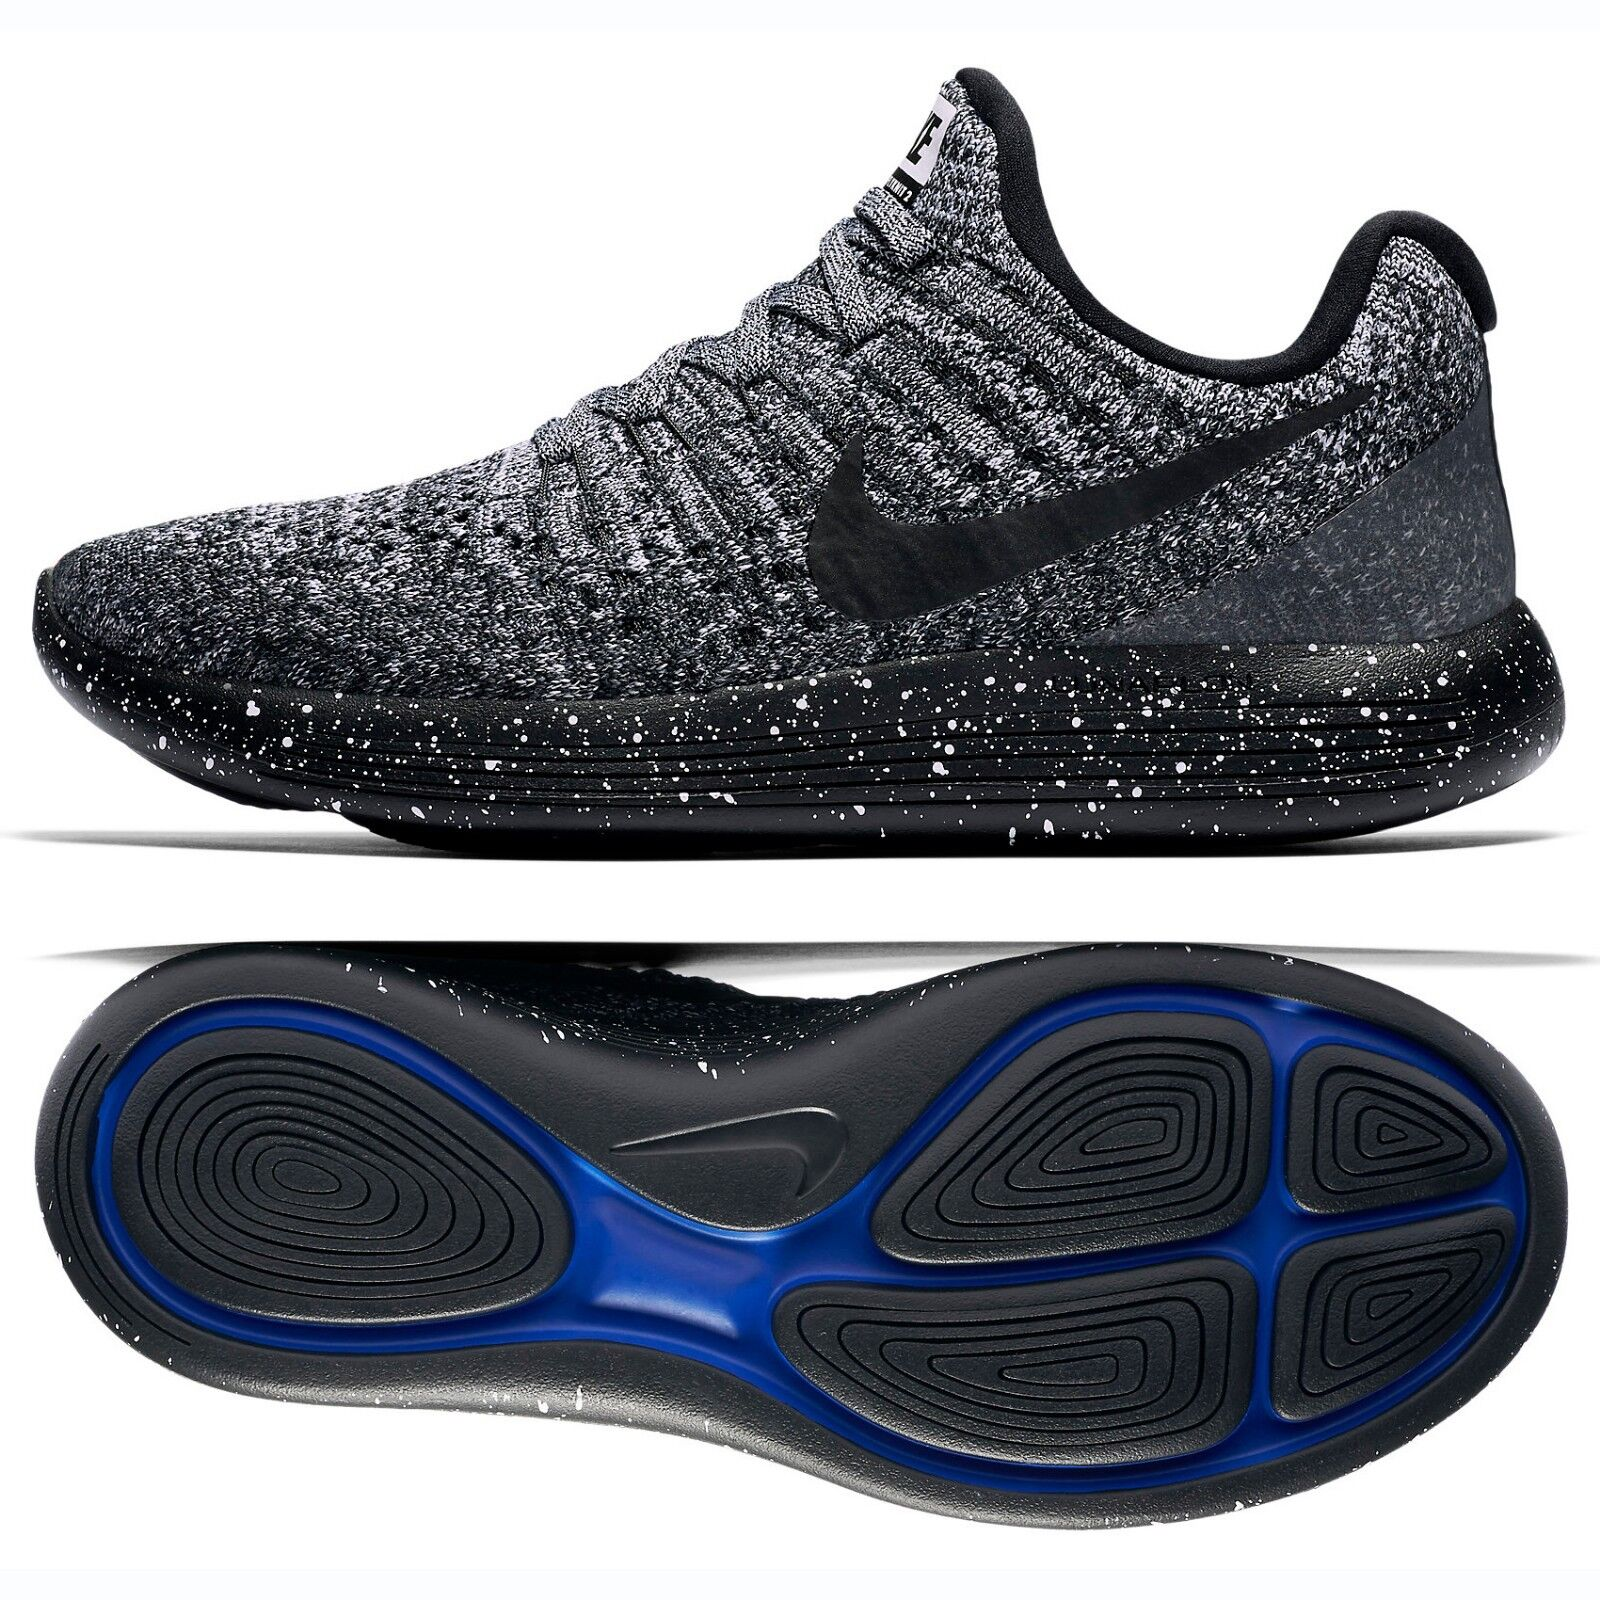 Nike W LunarEpic Low Flyknit 2 Black/Racer Blue Women's Running Shoes